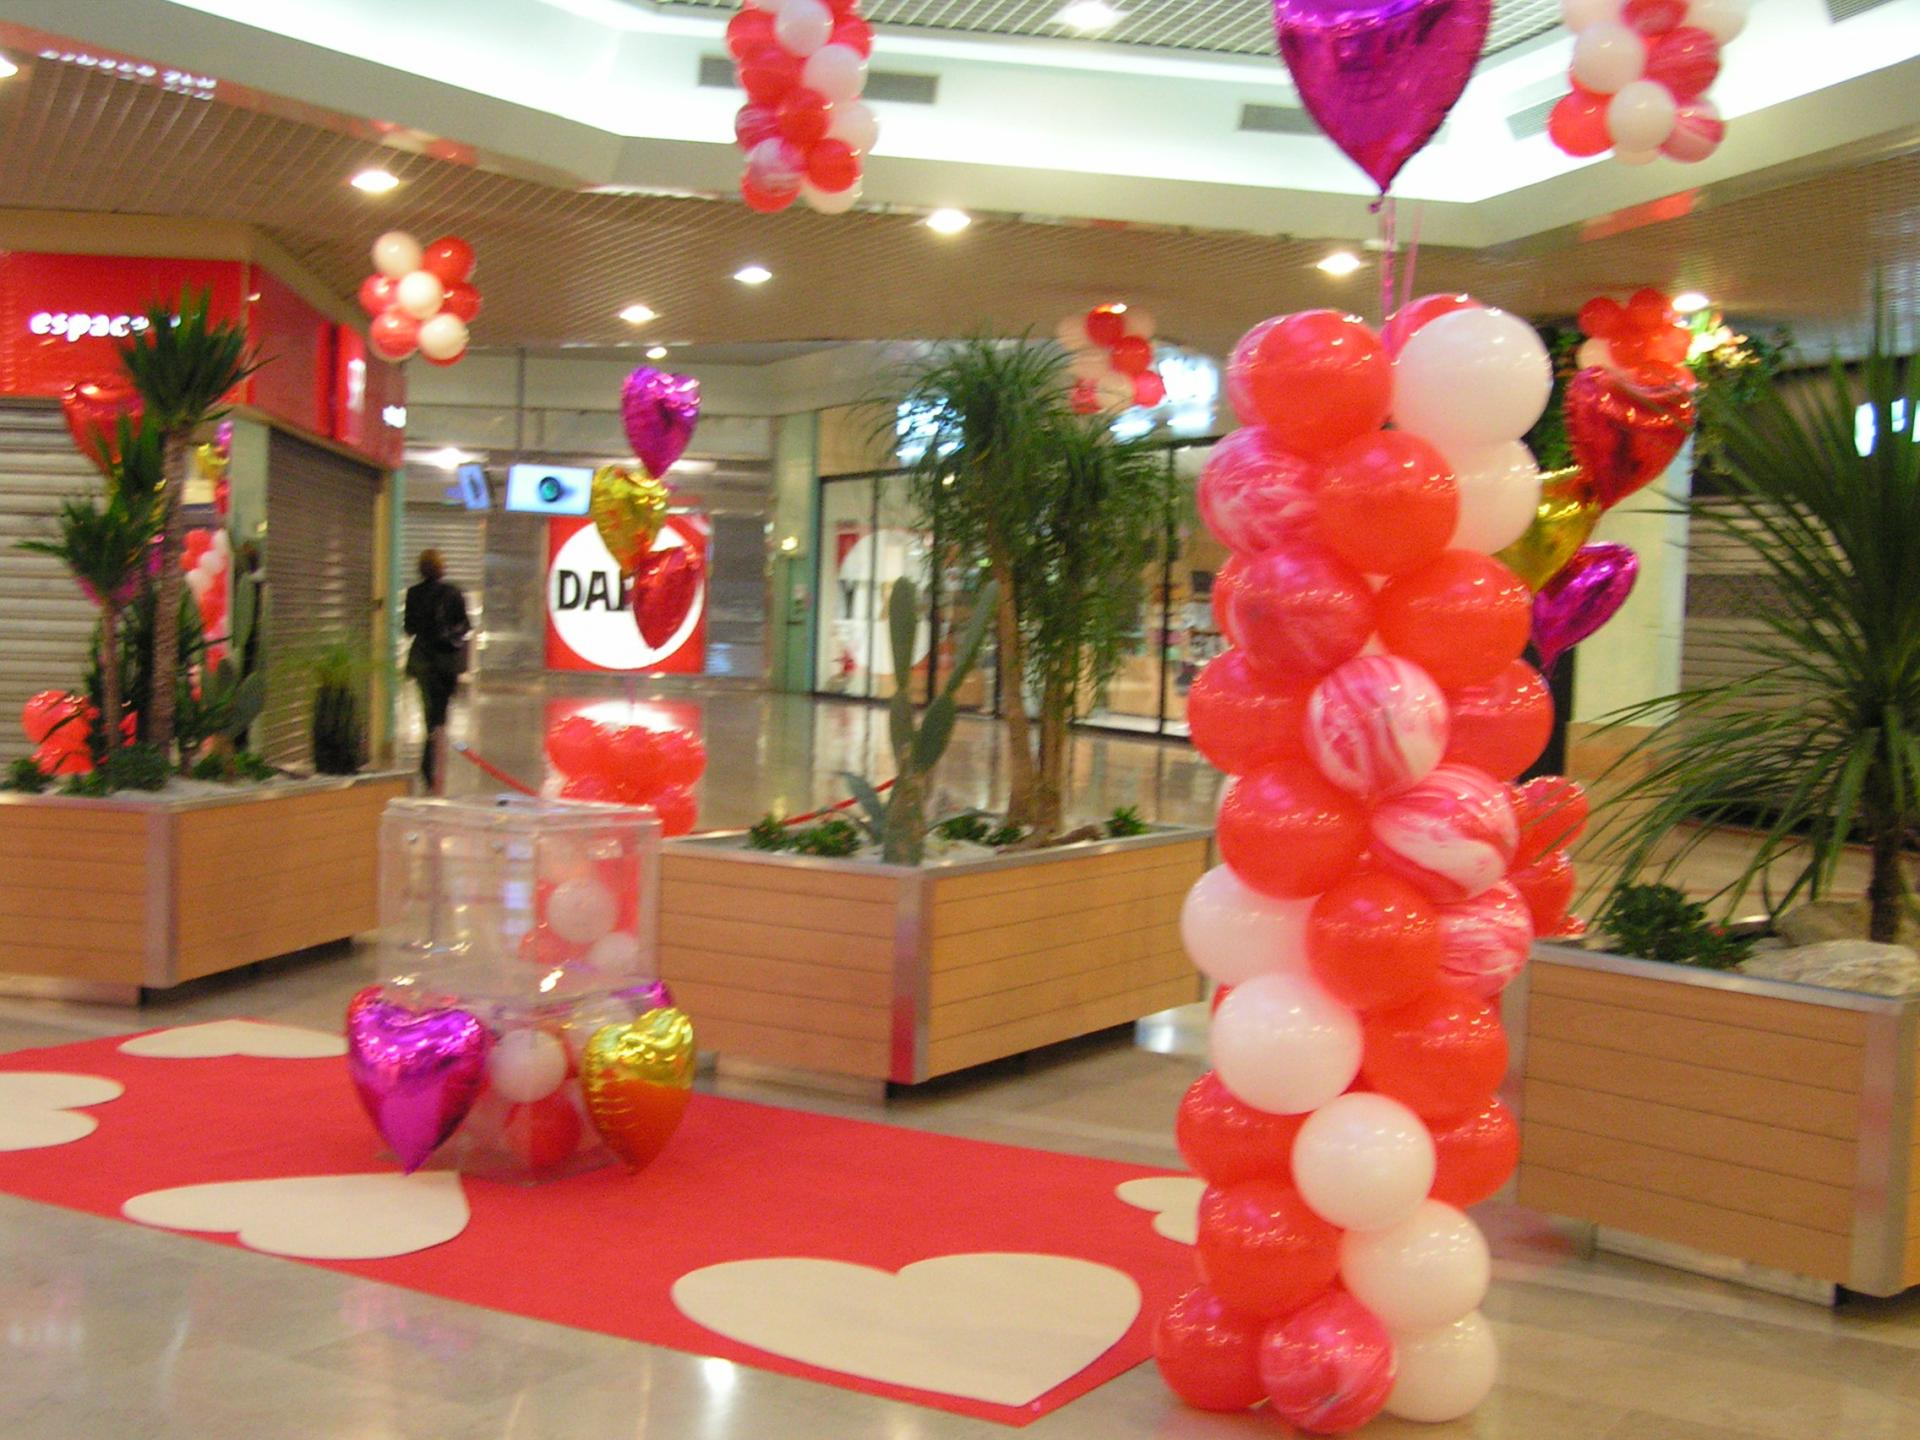 D coration ballons centres commerciaux galeries marchandes - Decoration st valentin ...